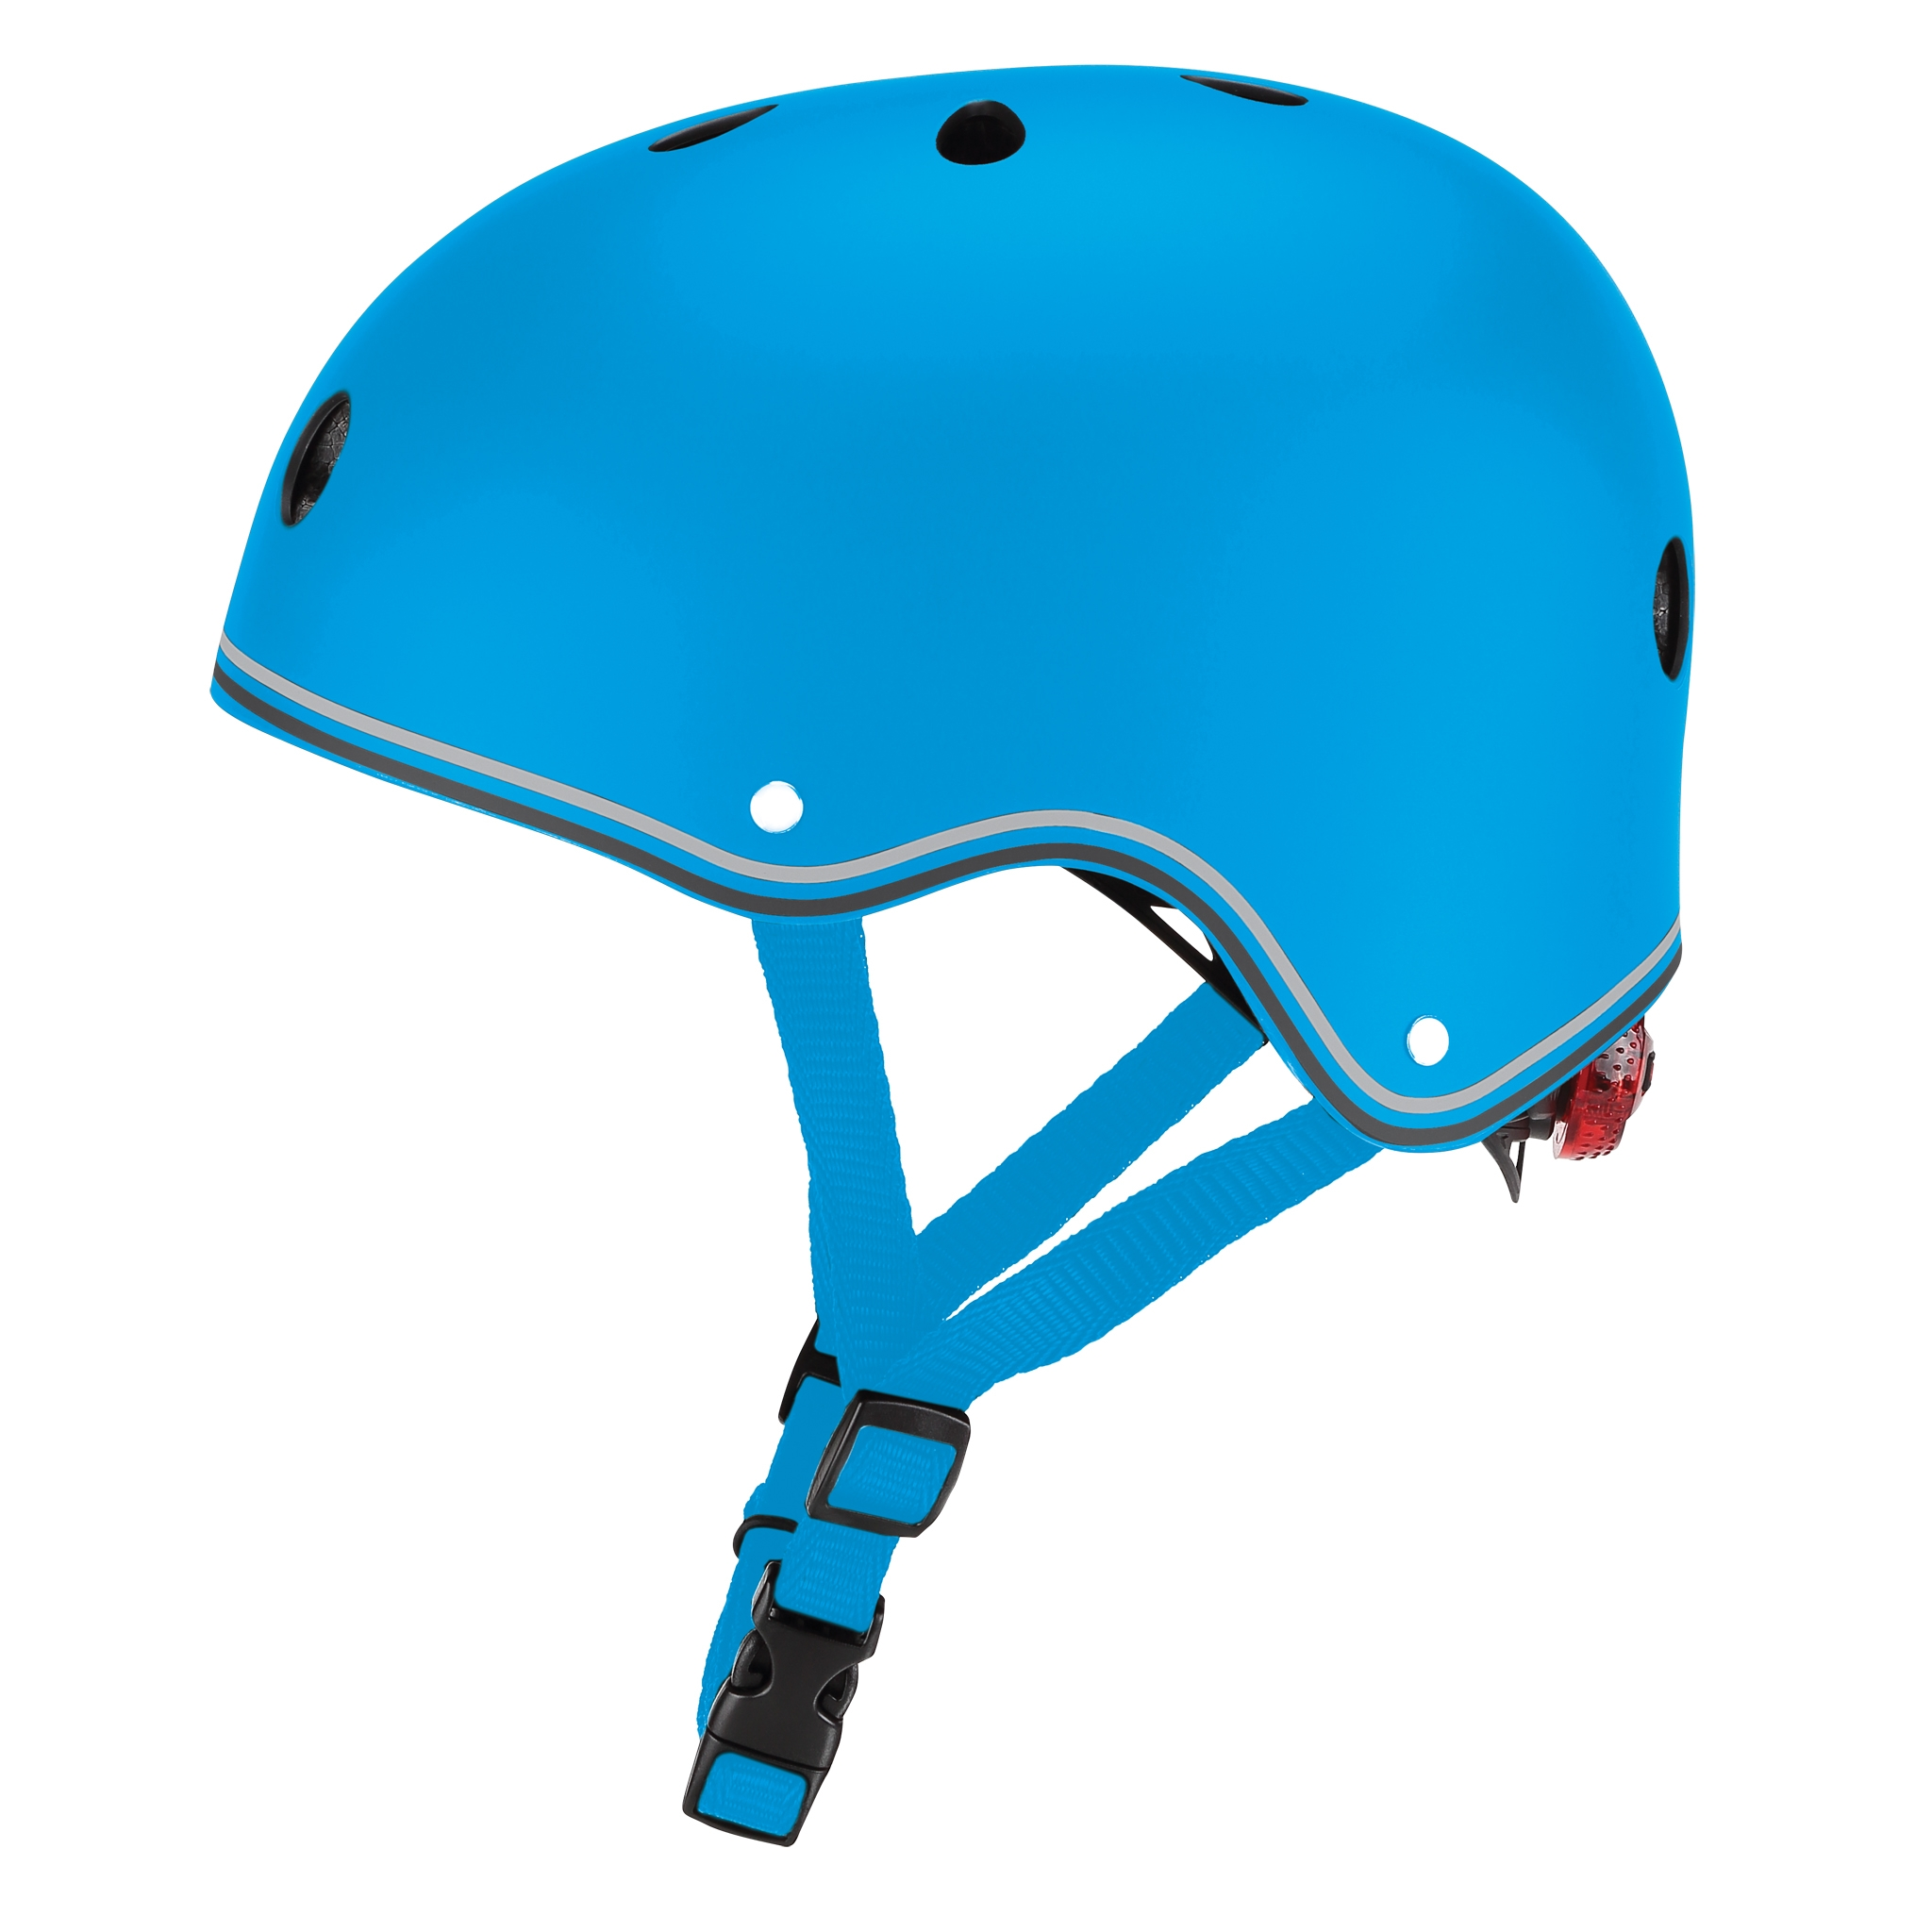 PRIMO-helmets-scooter-helmets-for-kids-with-adjustable-helmet-knob-sky-blue